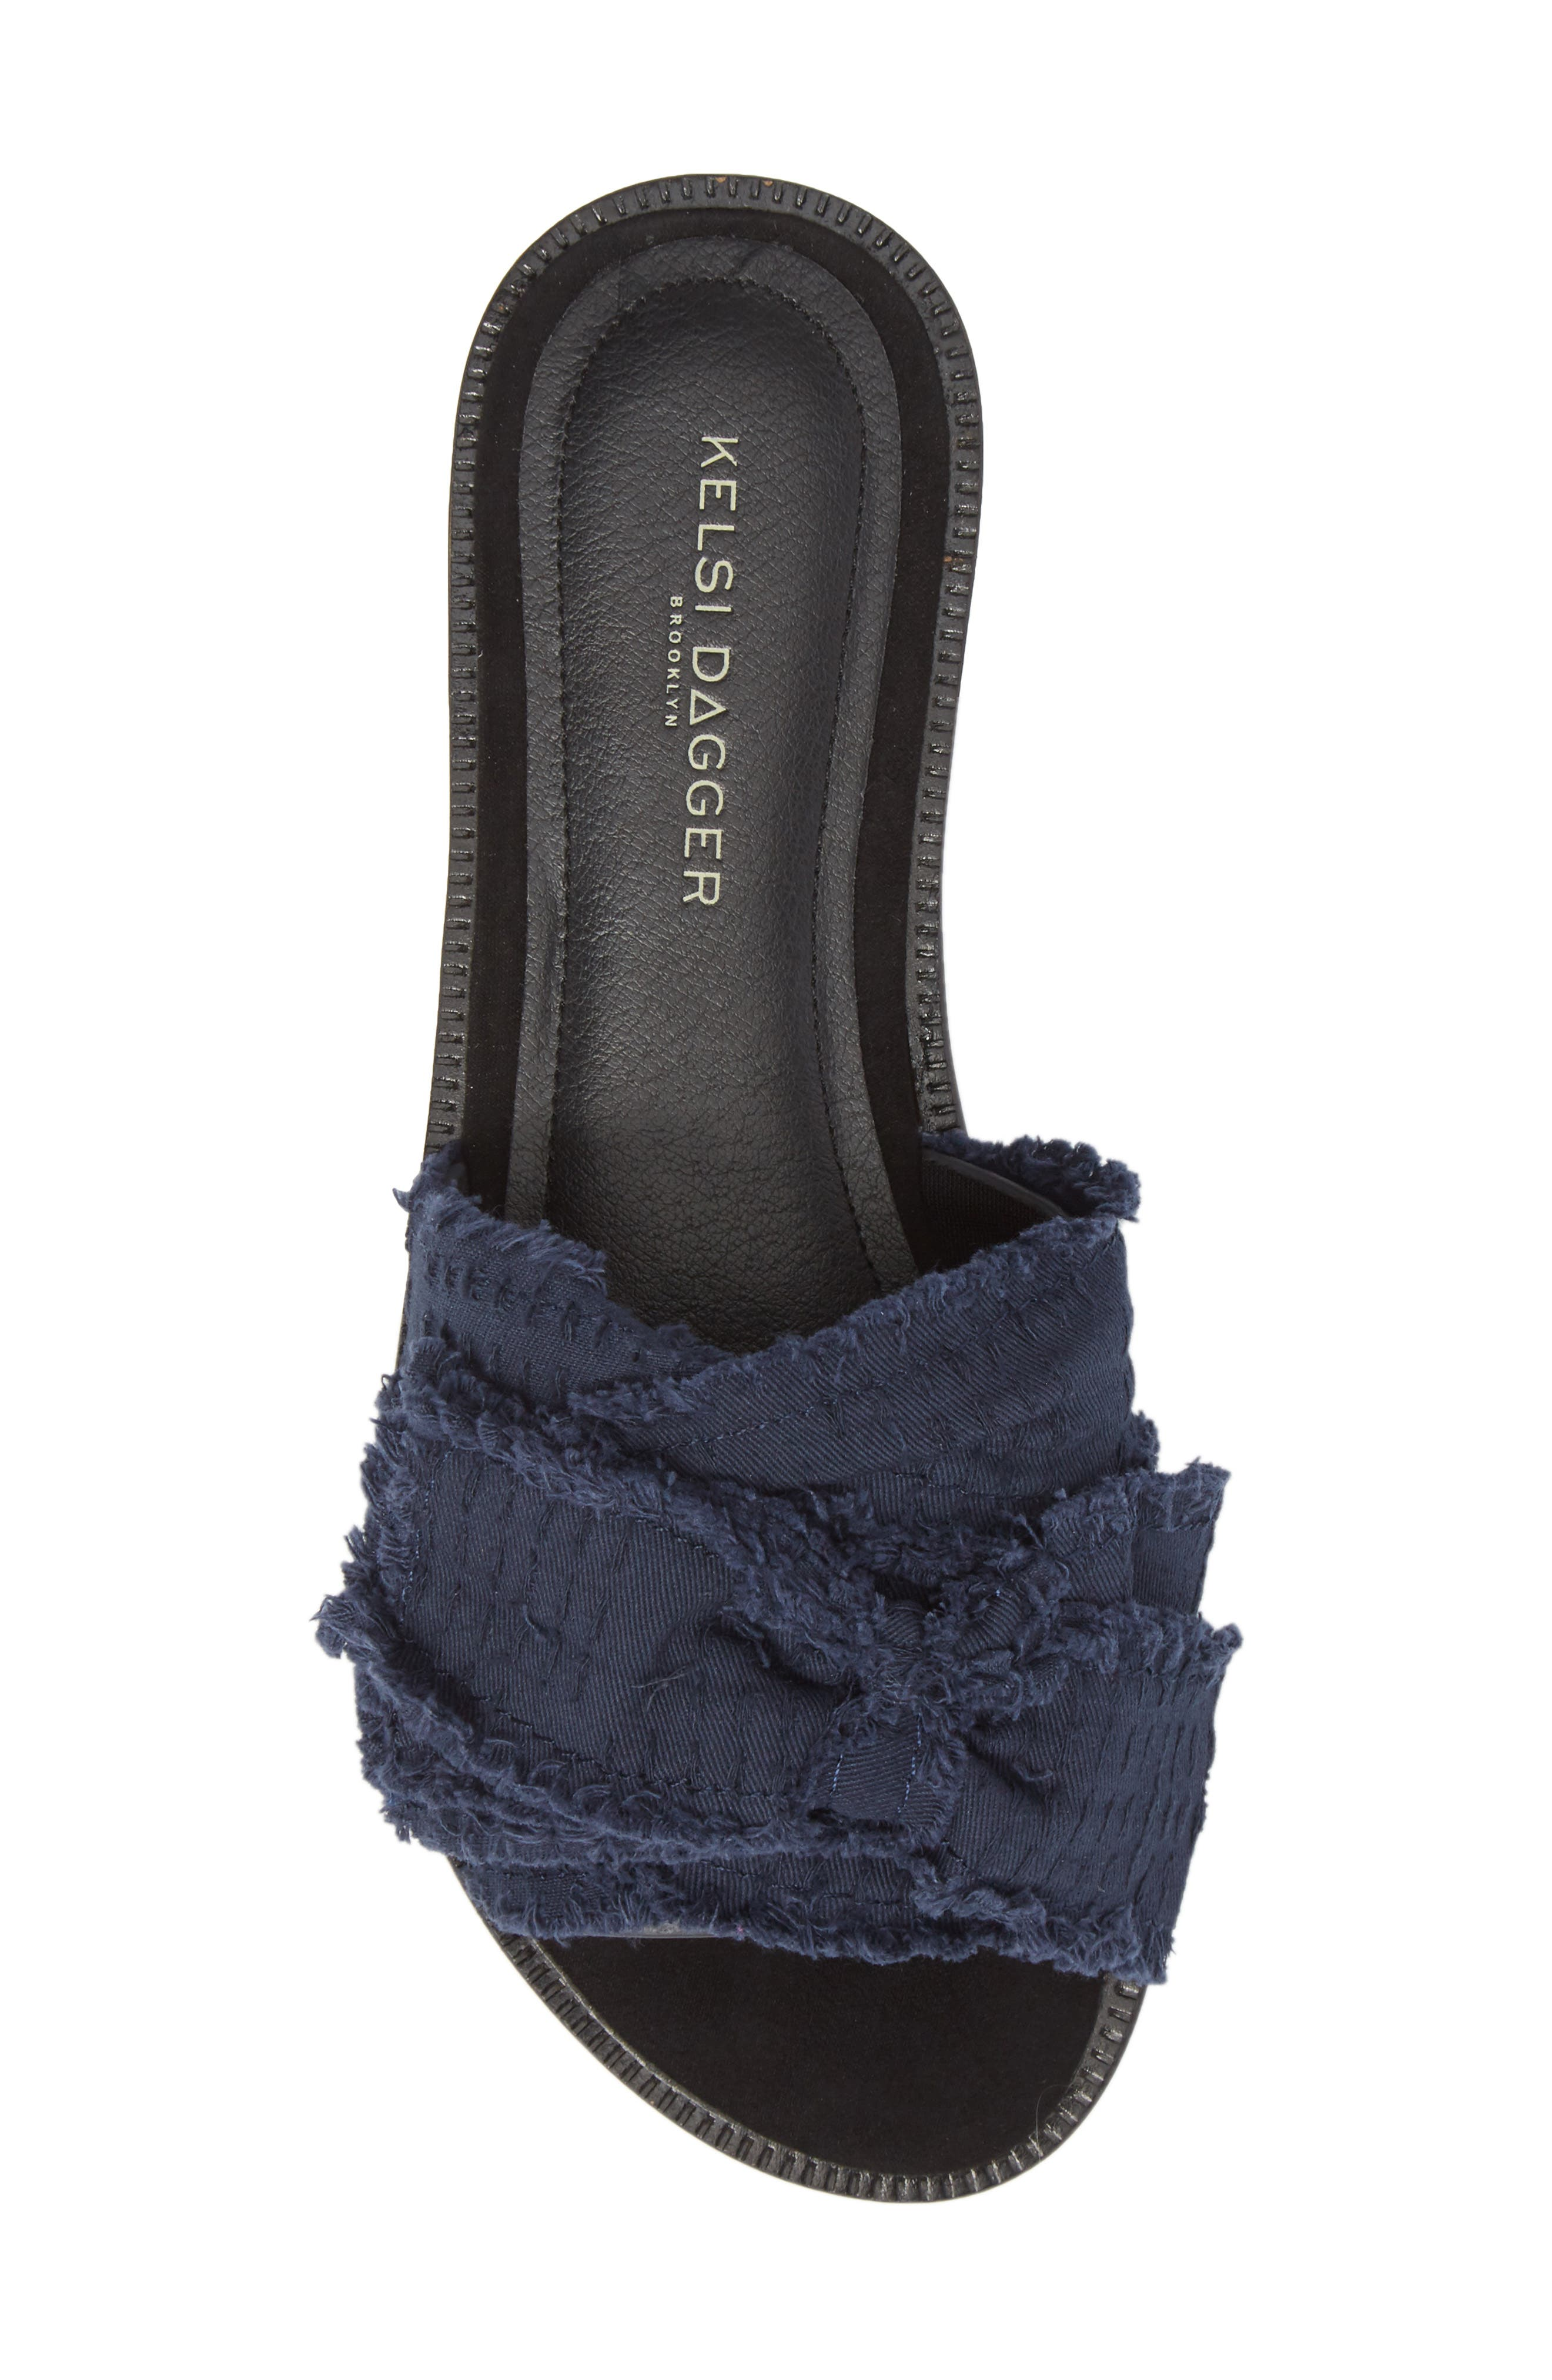 Revere Bow Slide Sandal,                             Alternate thumbnail 5, color,                             BLACK/ NAVY LEATHER